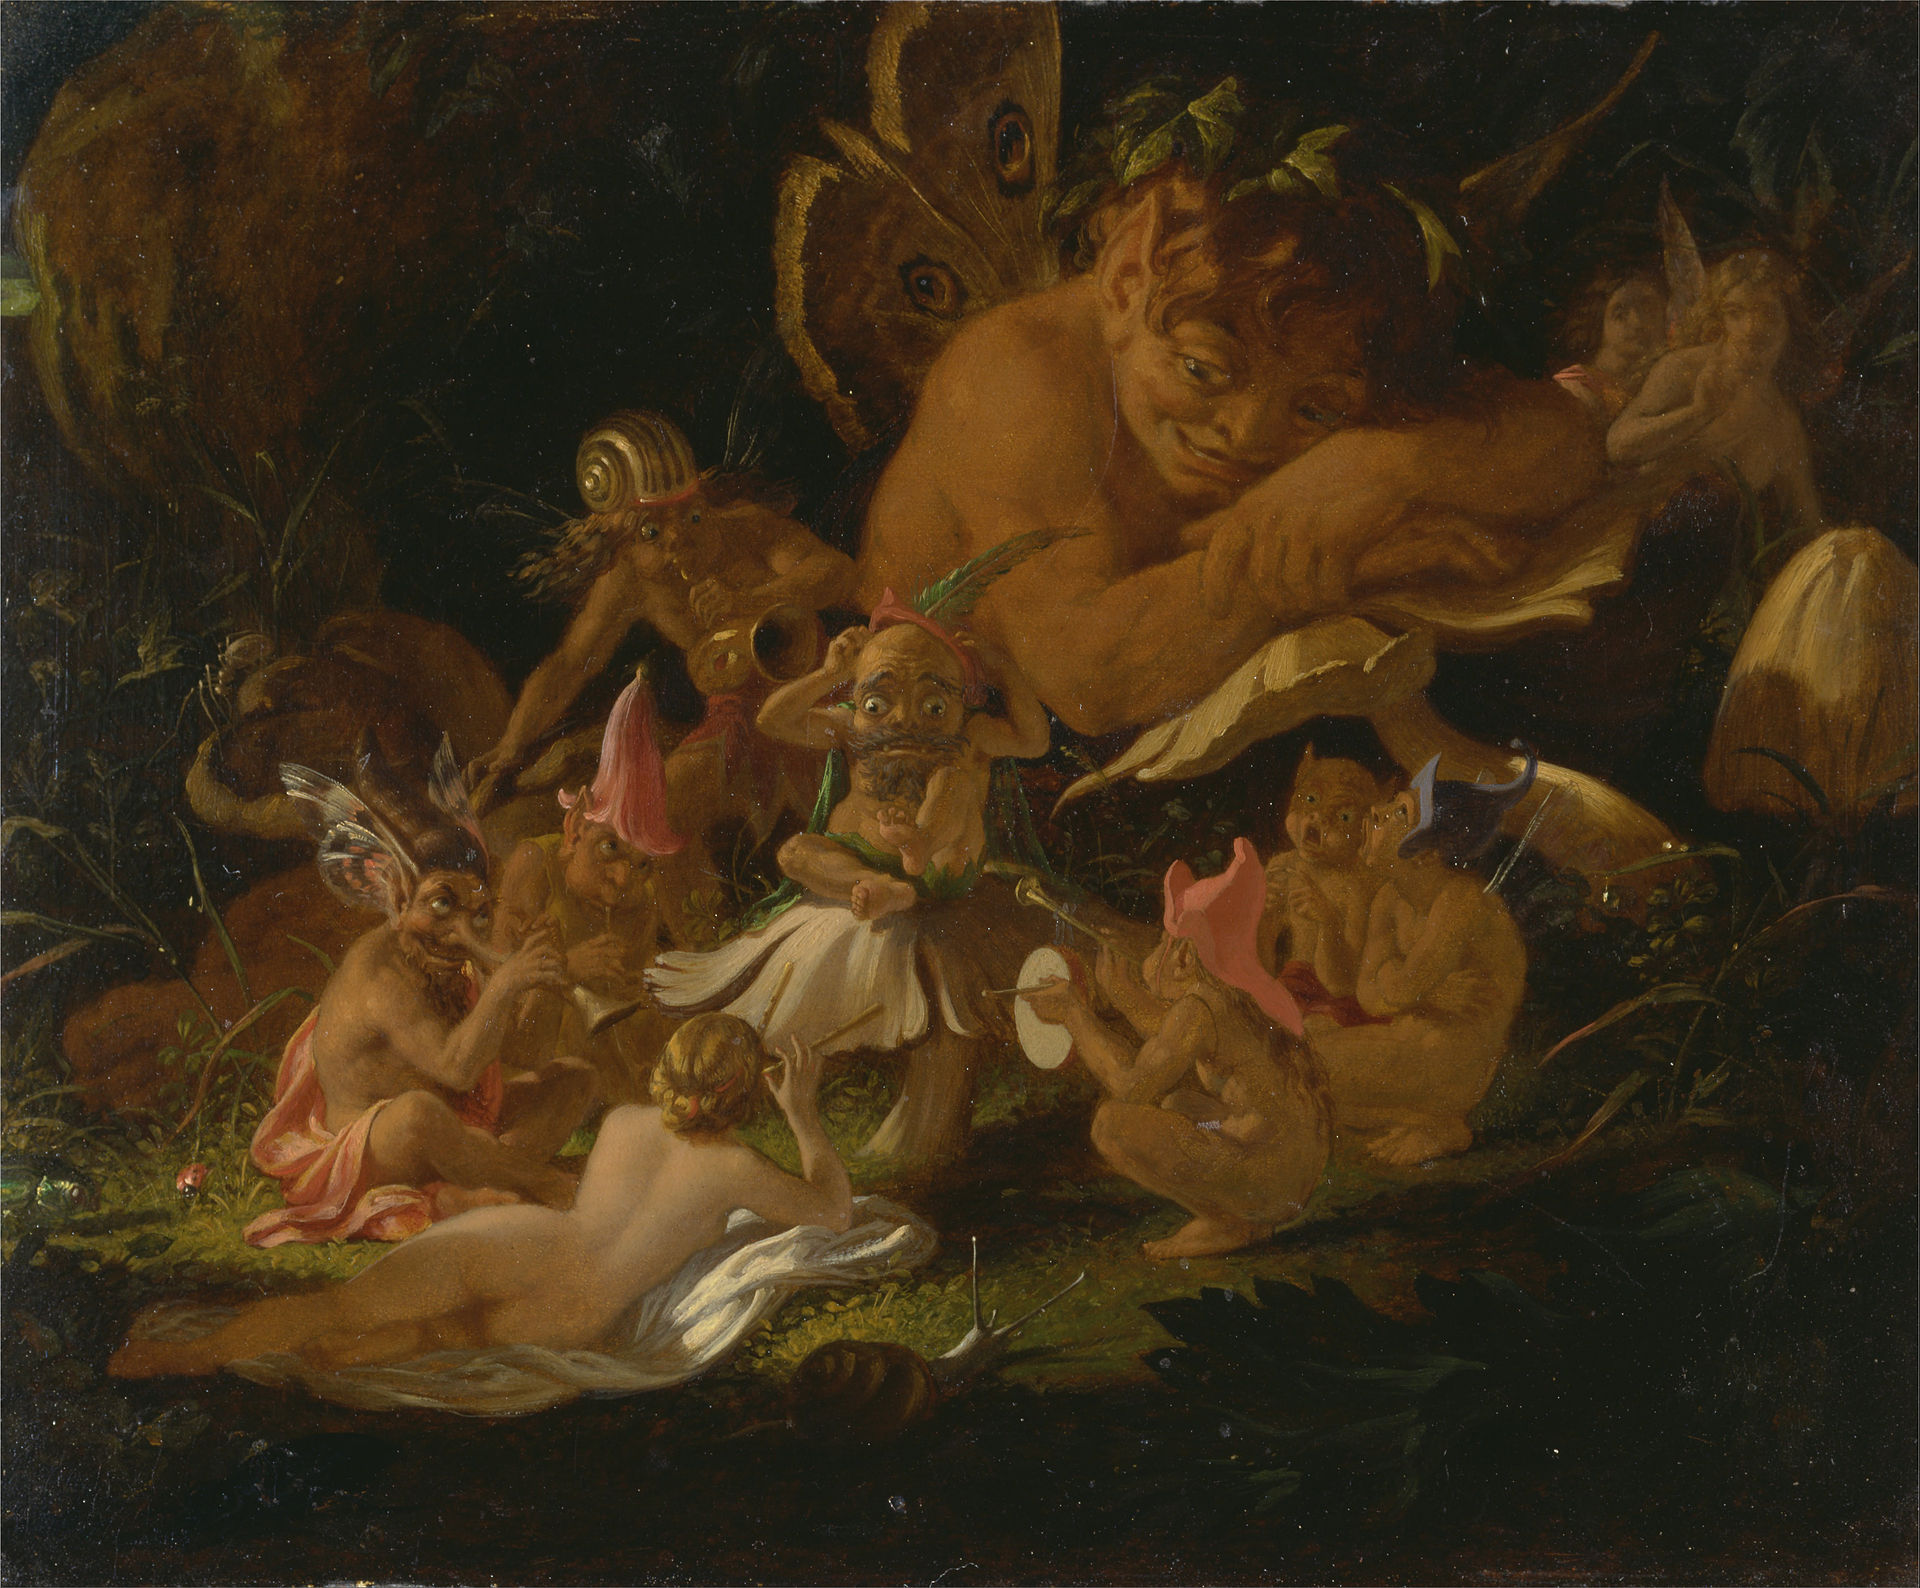 1920px-Joseph_Noel_Paton_-_Puck_and_Fairies,_from_-A_Midsummer_Night's_Dream-_-_Google_Art_Project